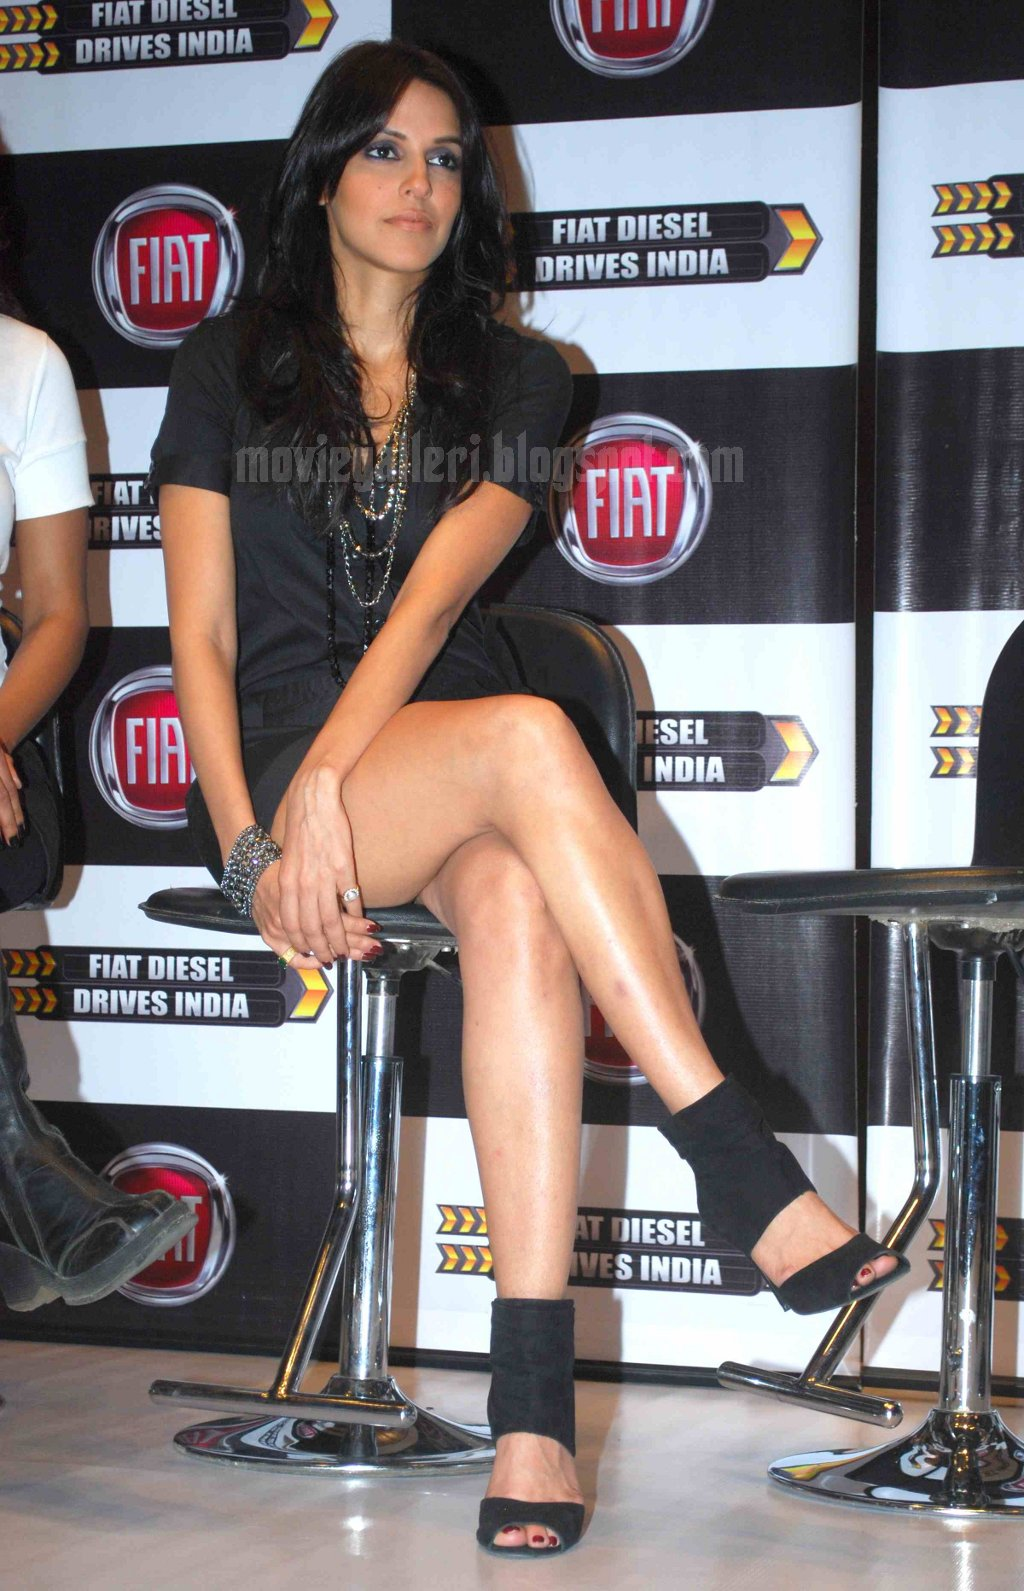 Neha Dhupia Launches Fiat Diesel Drives India Wallpapers -9534